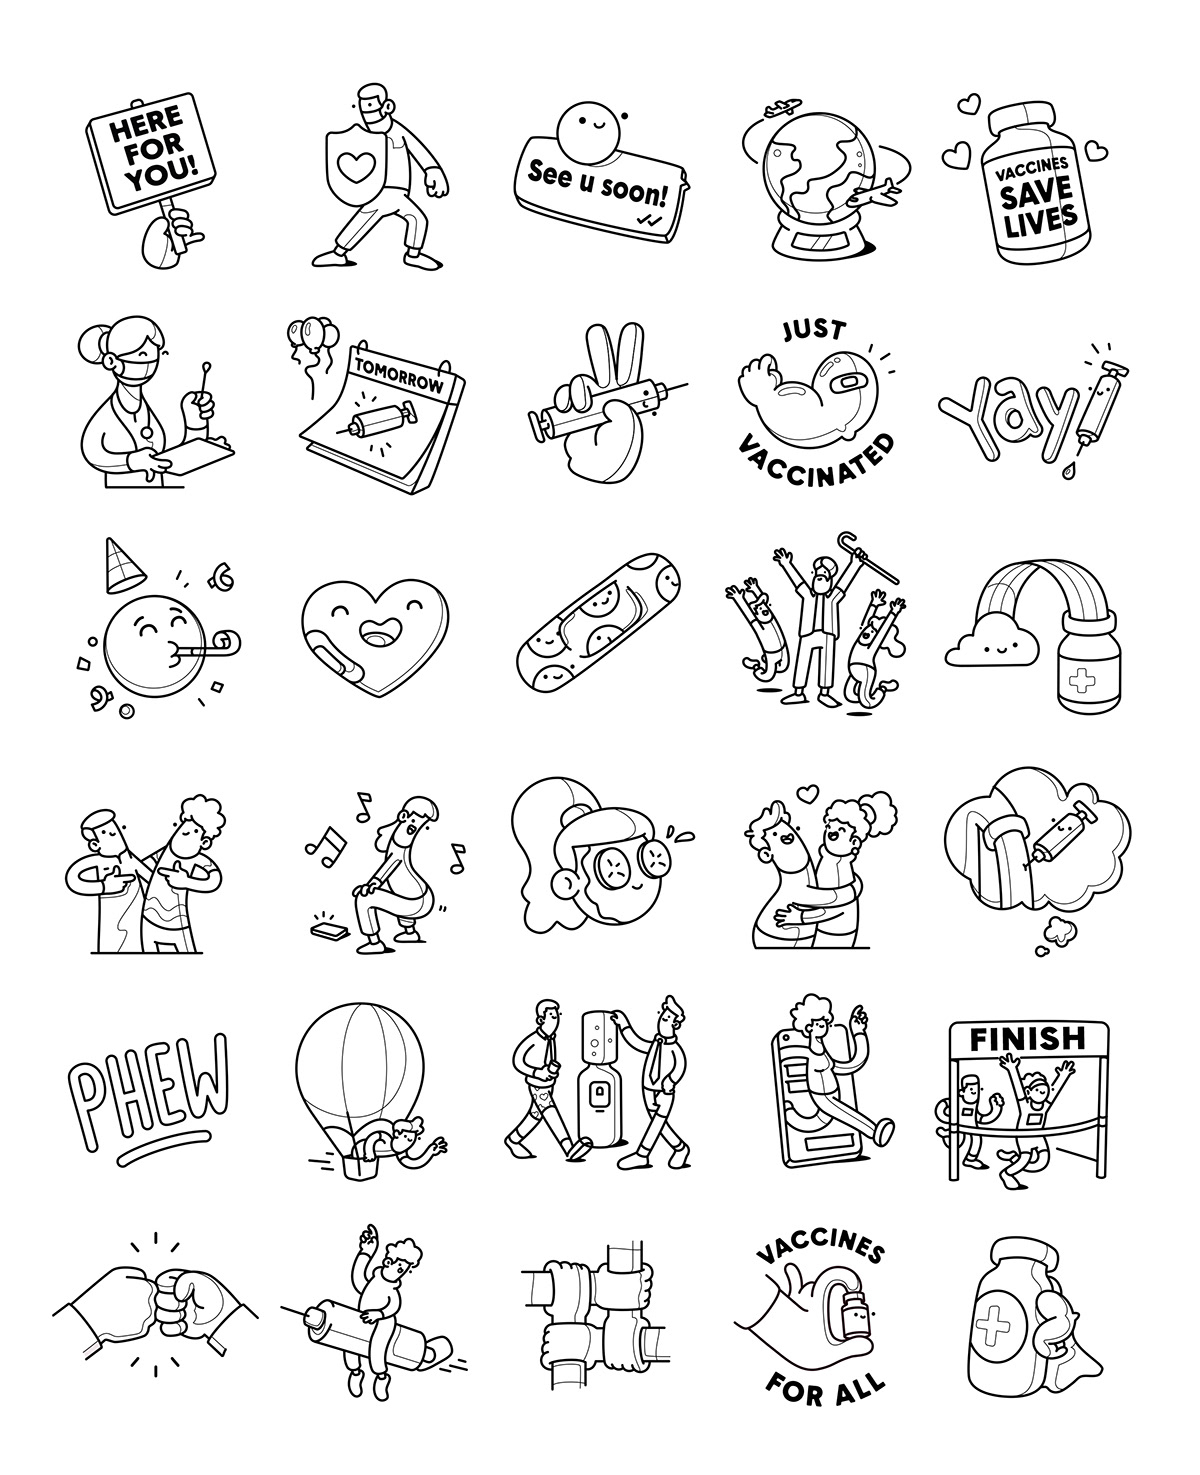 Character COVid cute delightful design happy pandemic relief connect pastel